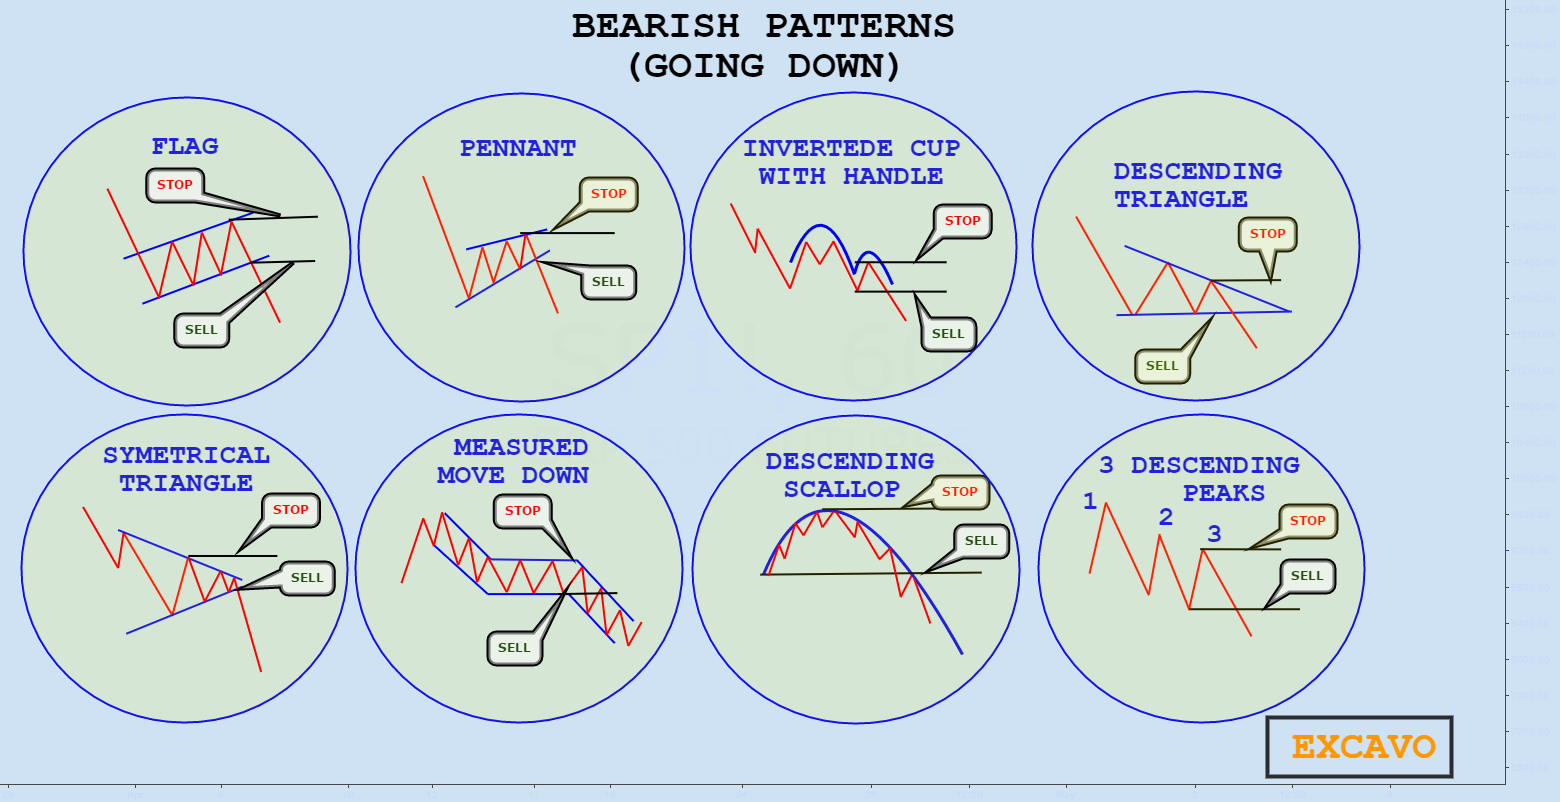 BEARISH PATTERNS